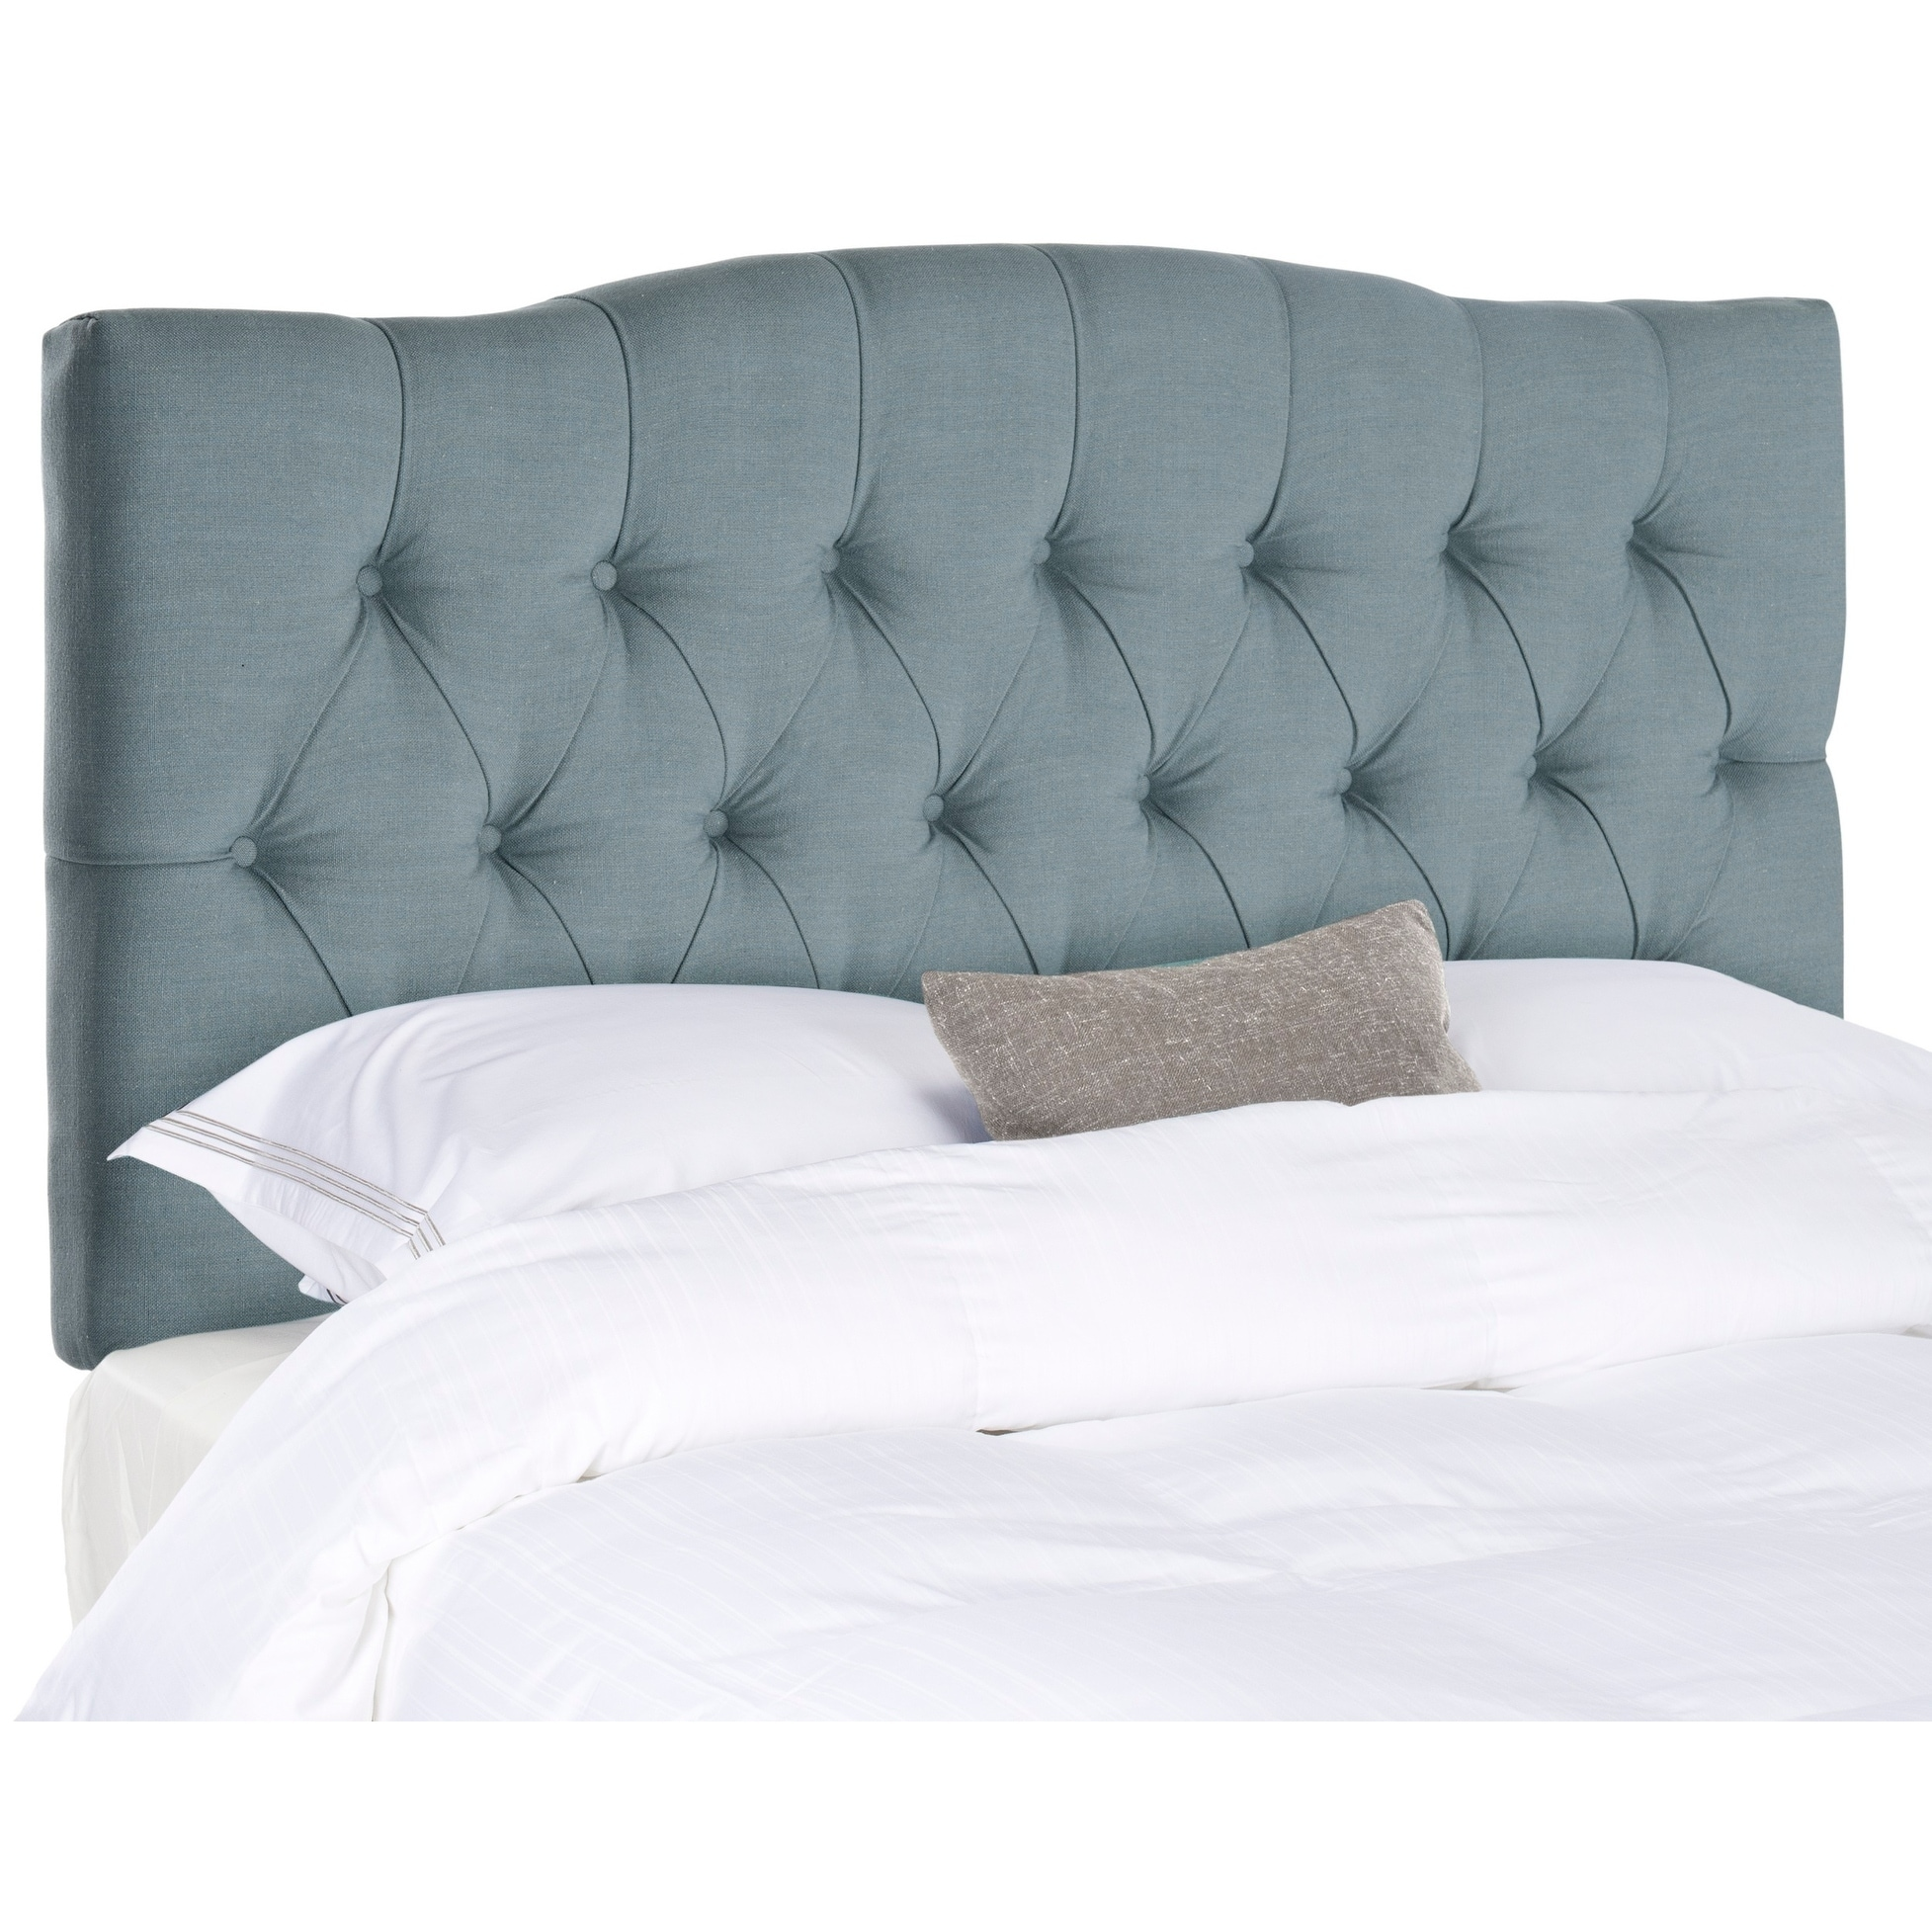 Picture of: Shop Safavieh Axel Sky Blue Upholstered Tufted Headboard King Overstock 9529863